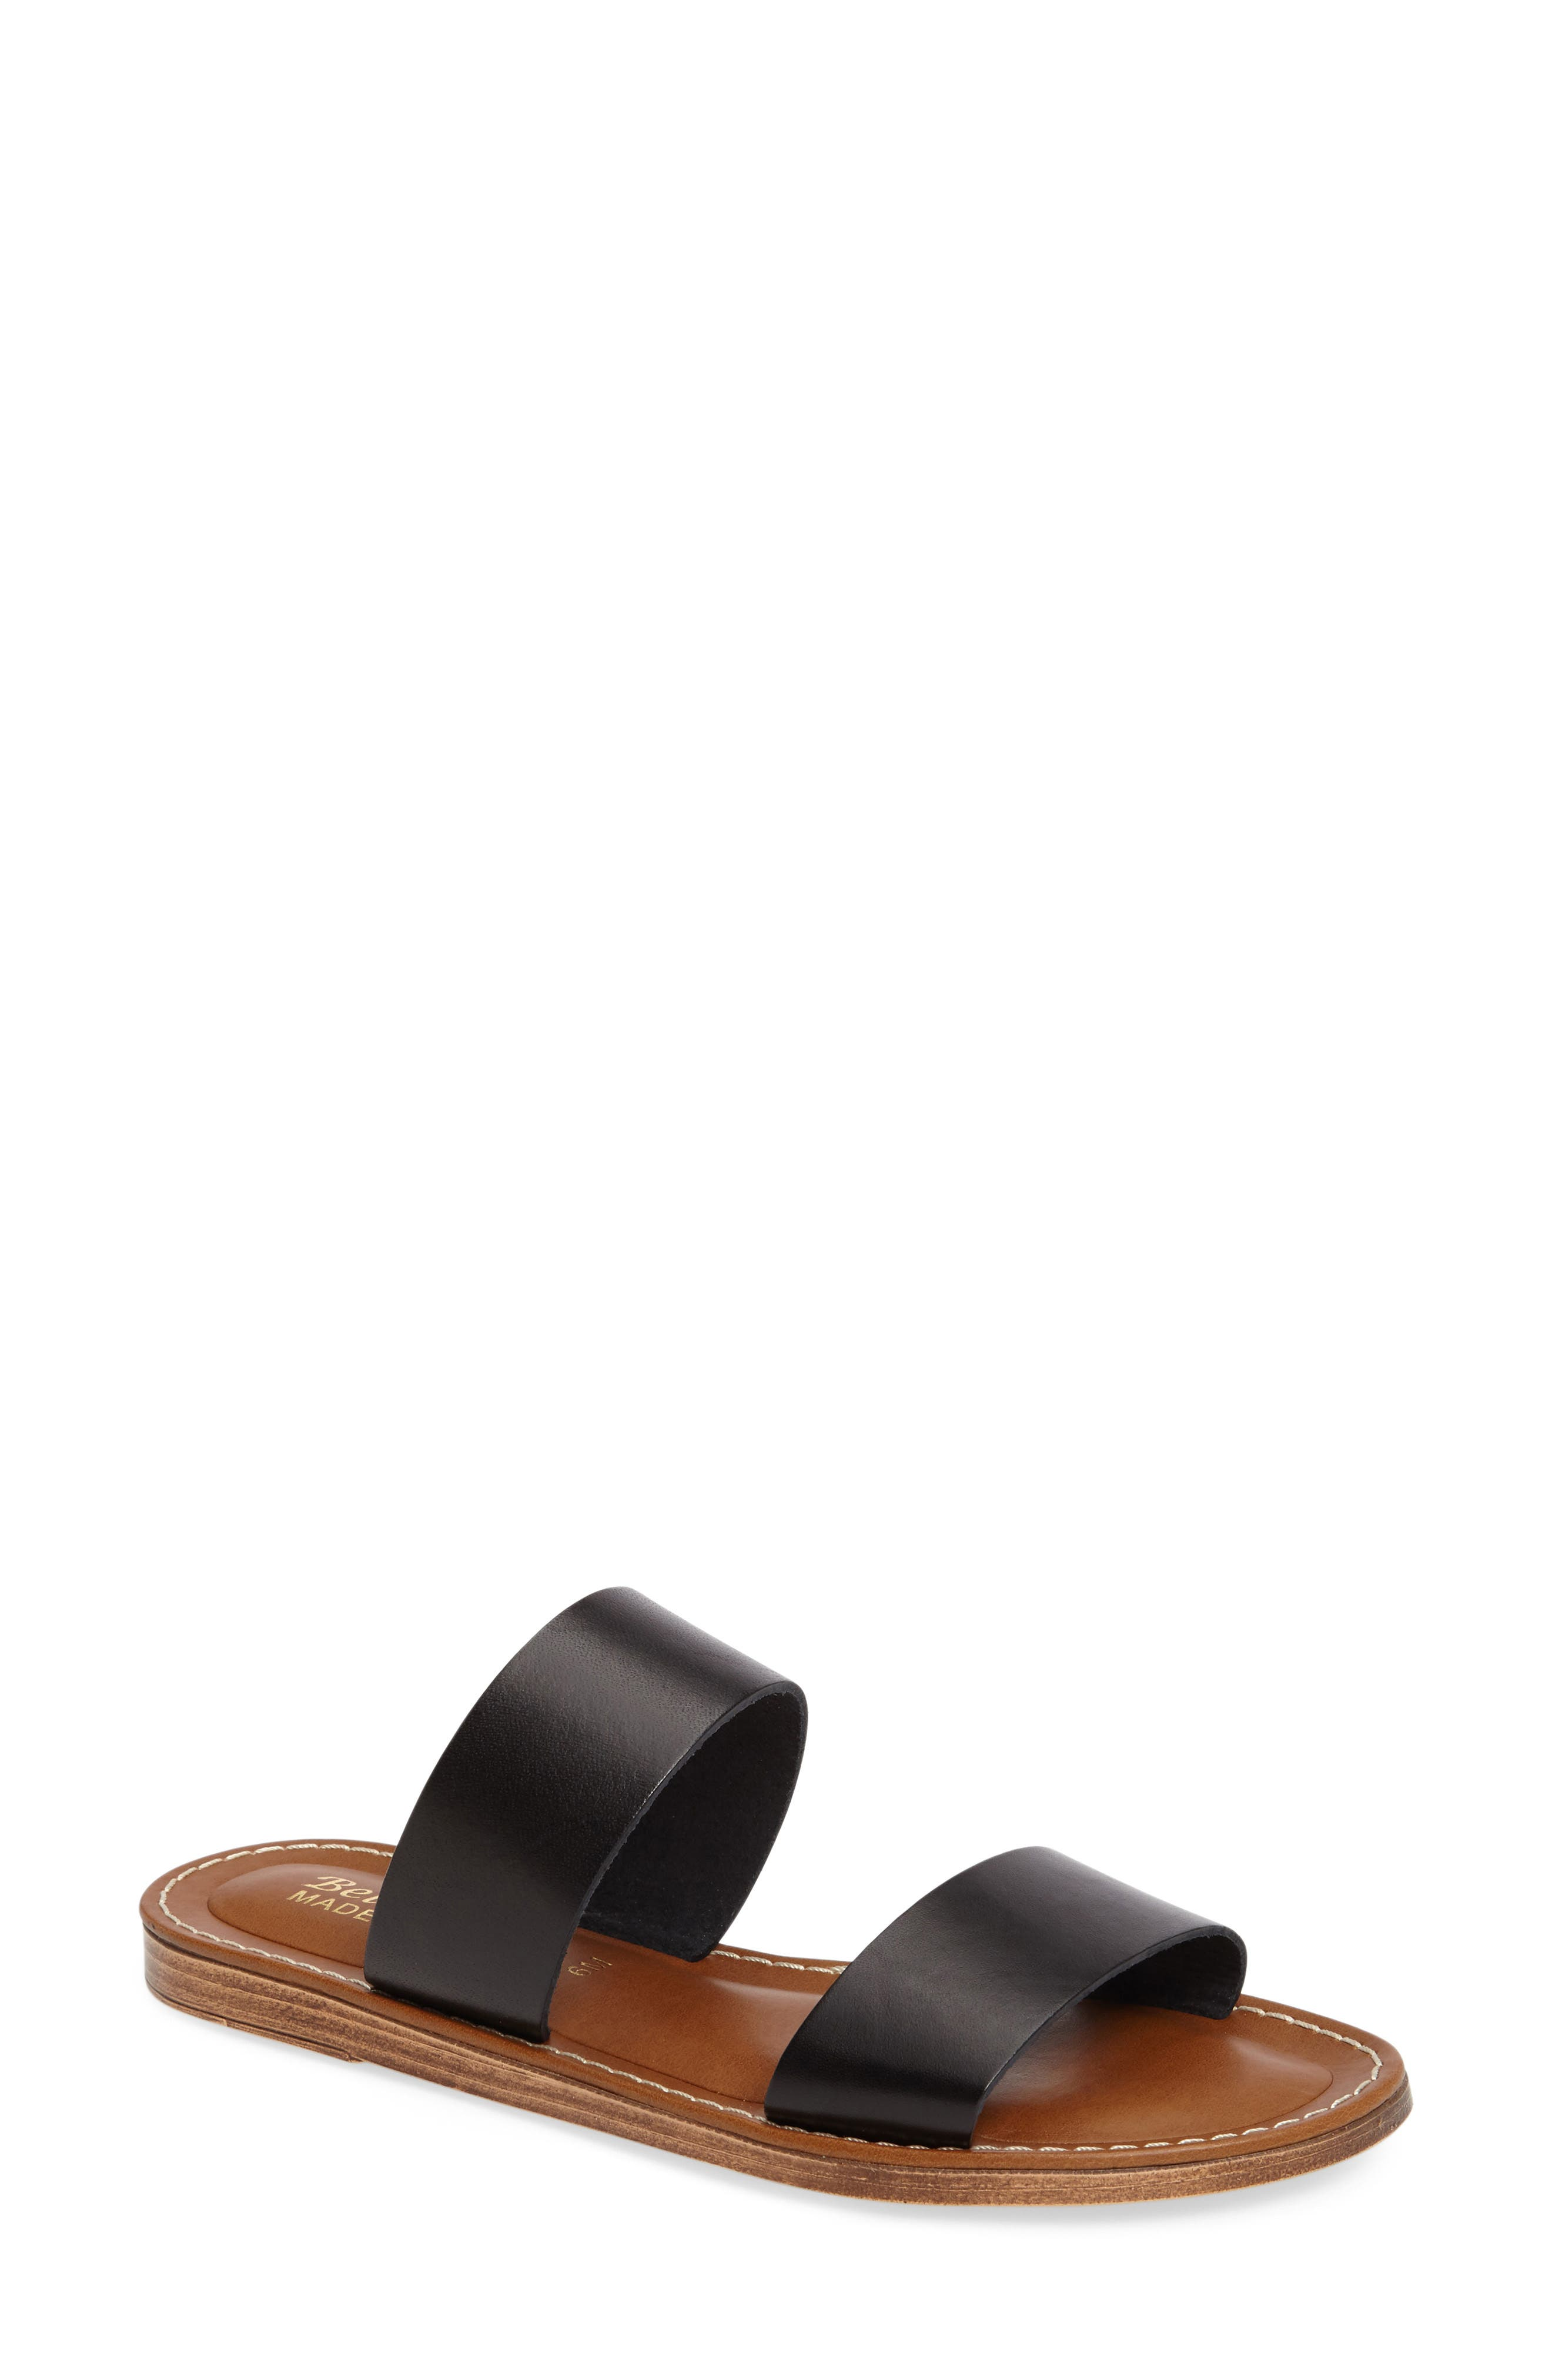 A flat sandal made from Italian leather completes any ensemble with modern minimalism. Style Name: Bella Vita Imo Slide Sandal (Women). Style Number: 5337623 2. Available in stores.